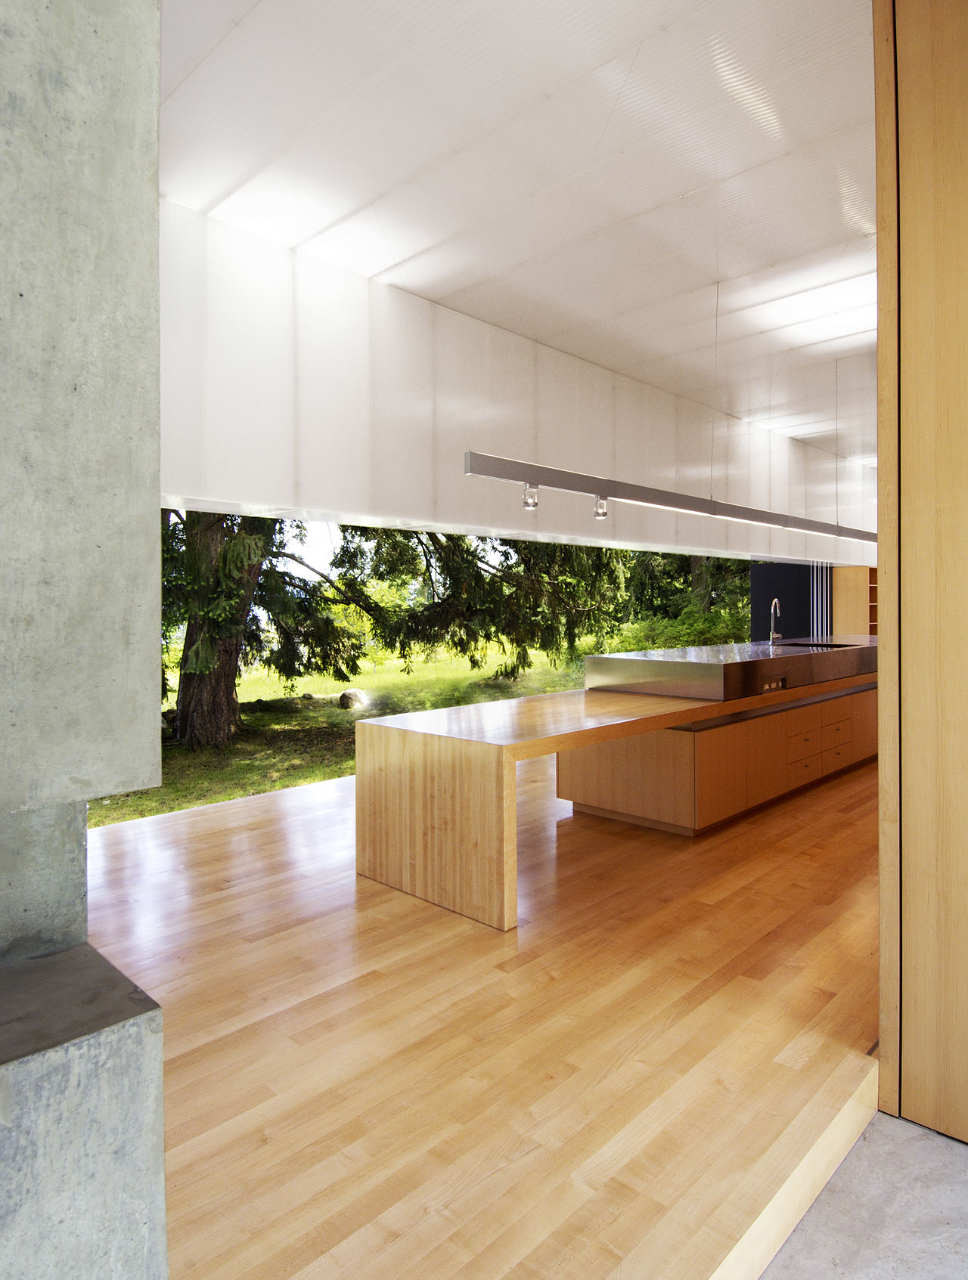 the-tree-mag-linear-house-by-patkau-architects-70.jpg